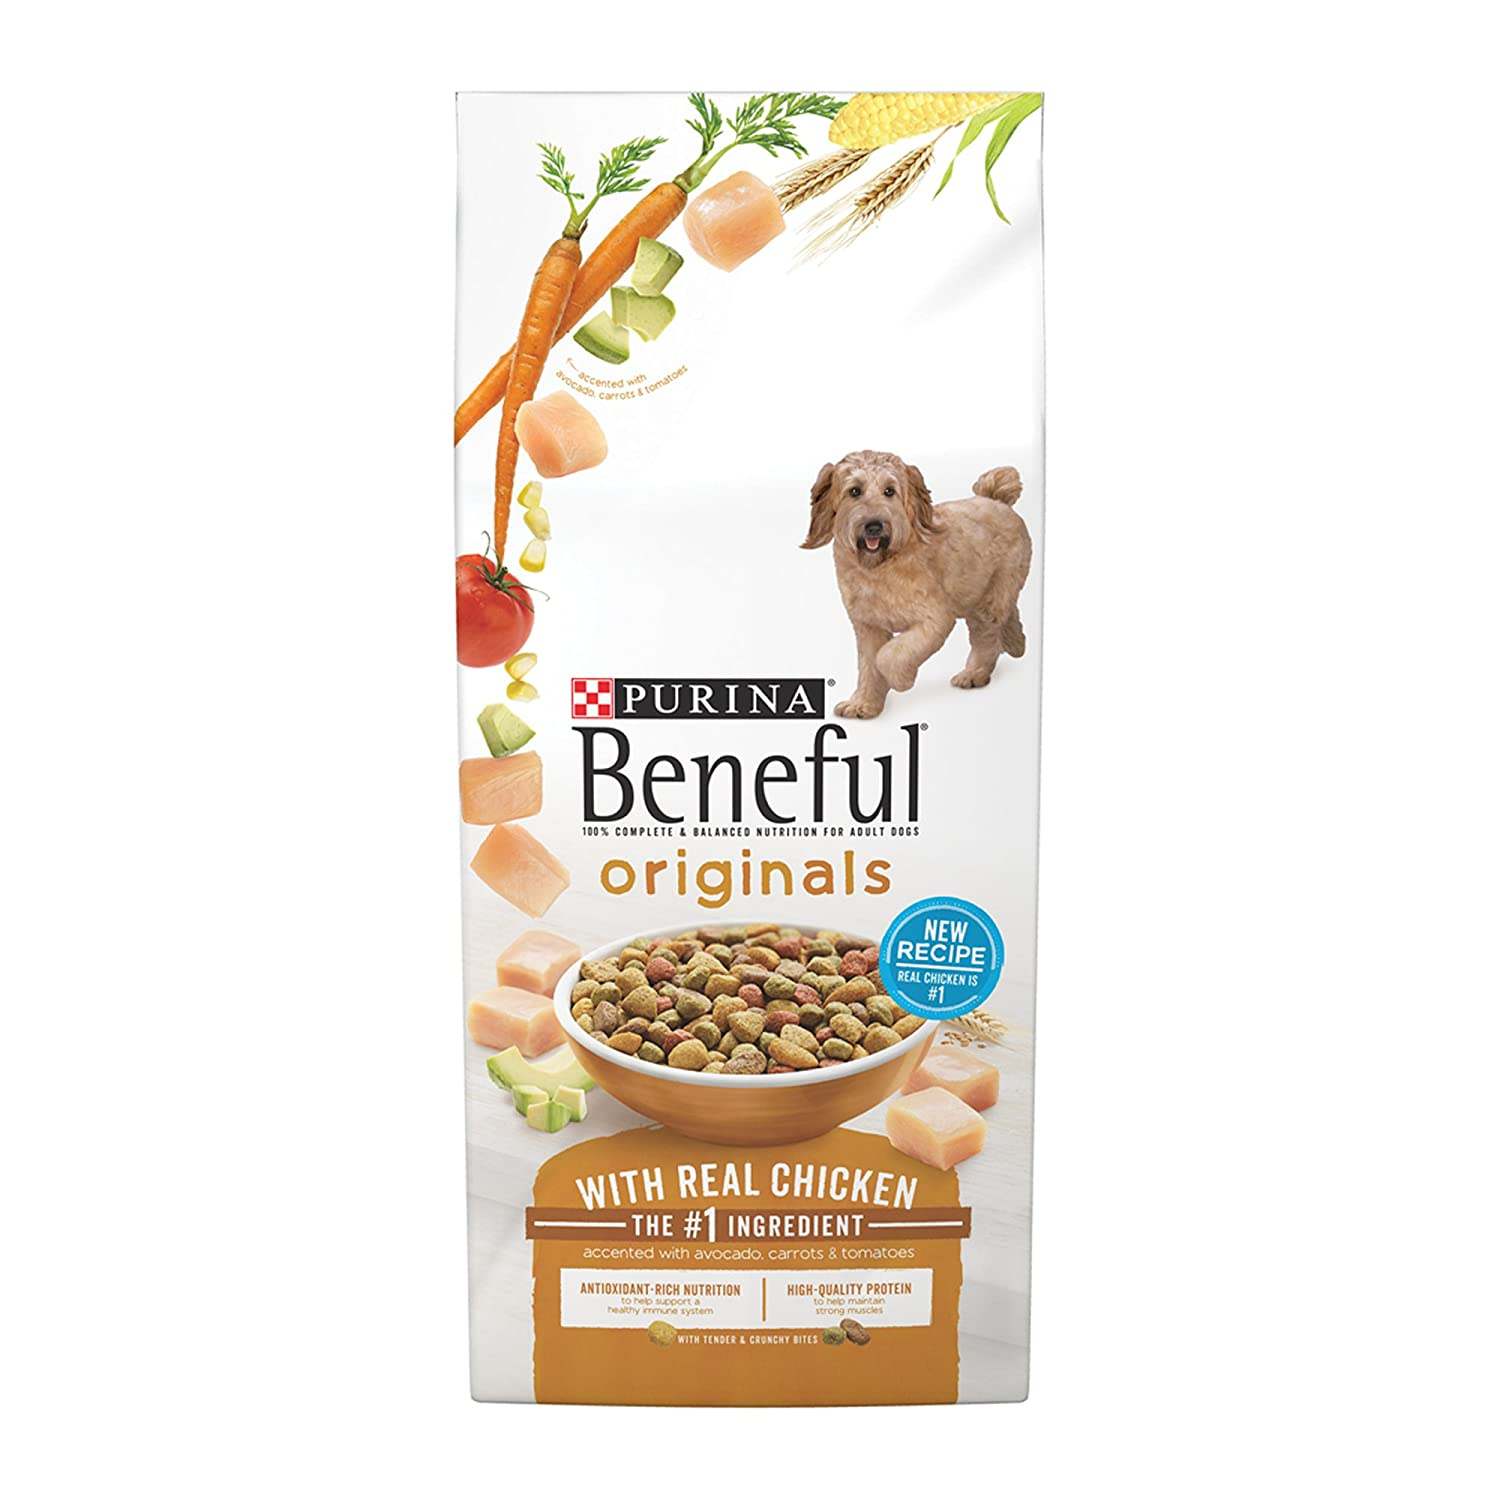 Purina Beneful Originals With Real Chicken